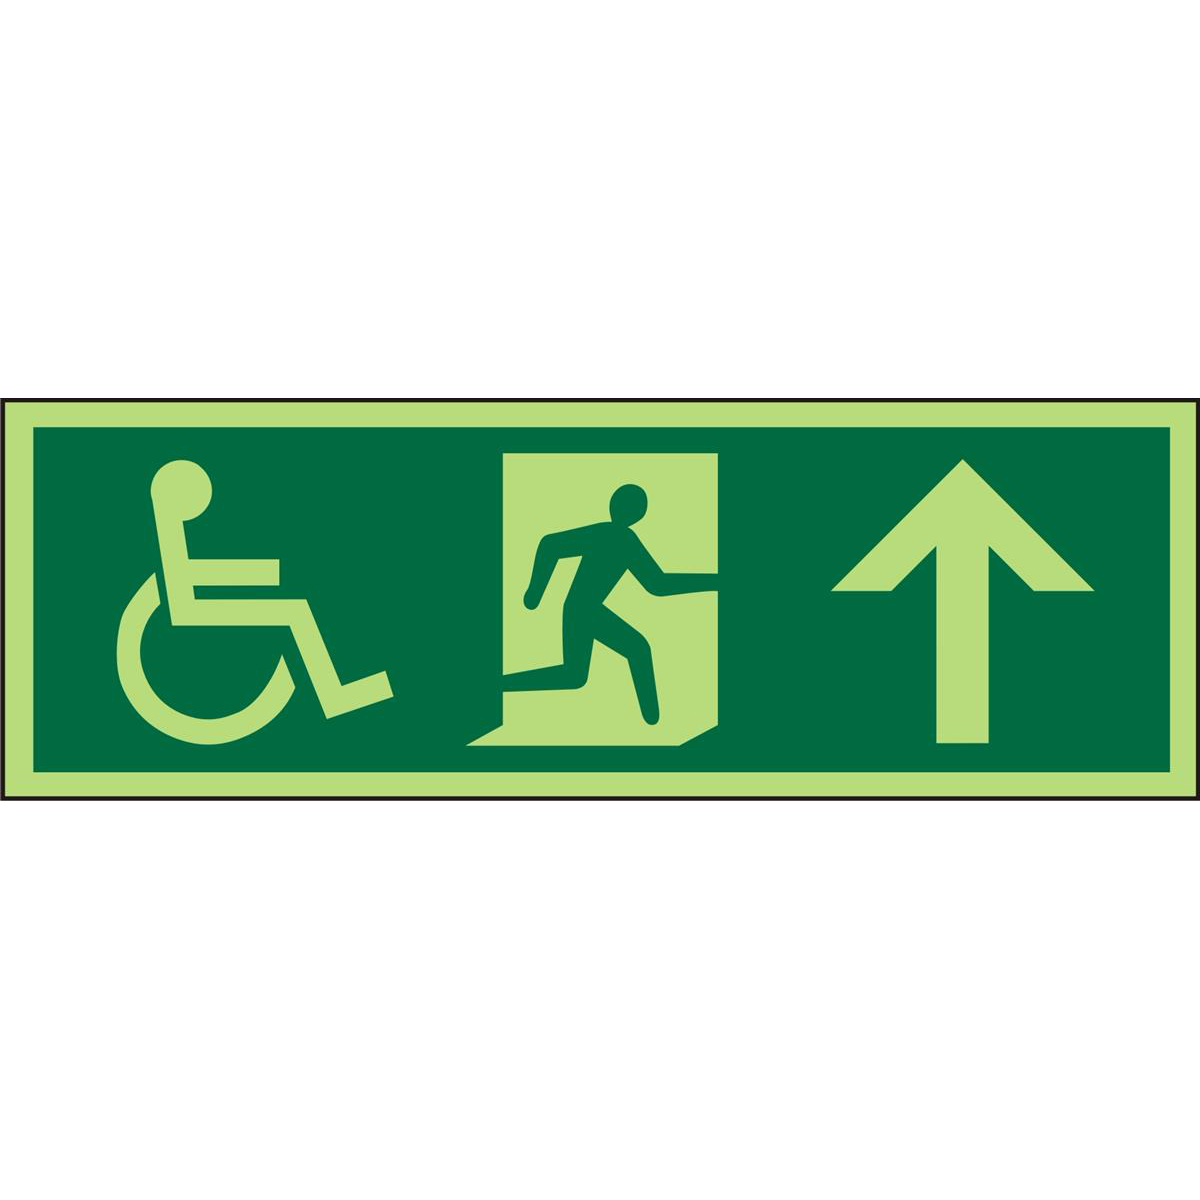 Photol Exit Sign 2mm Wheelchair Picto/Man run right Arrow up Ref PDSP094450x150 *Up to 10Day Leadtime*